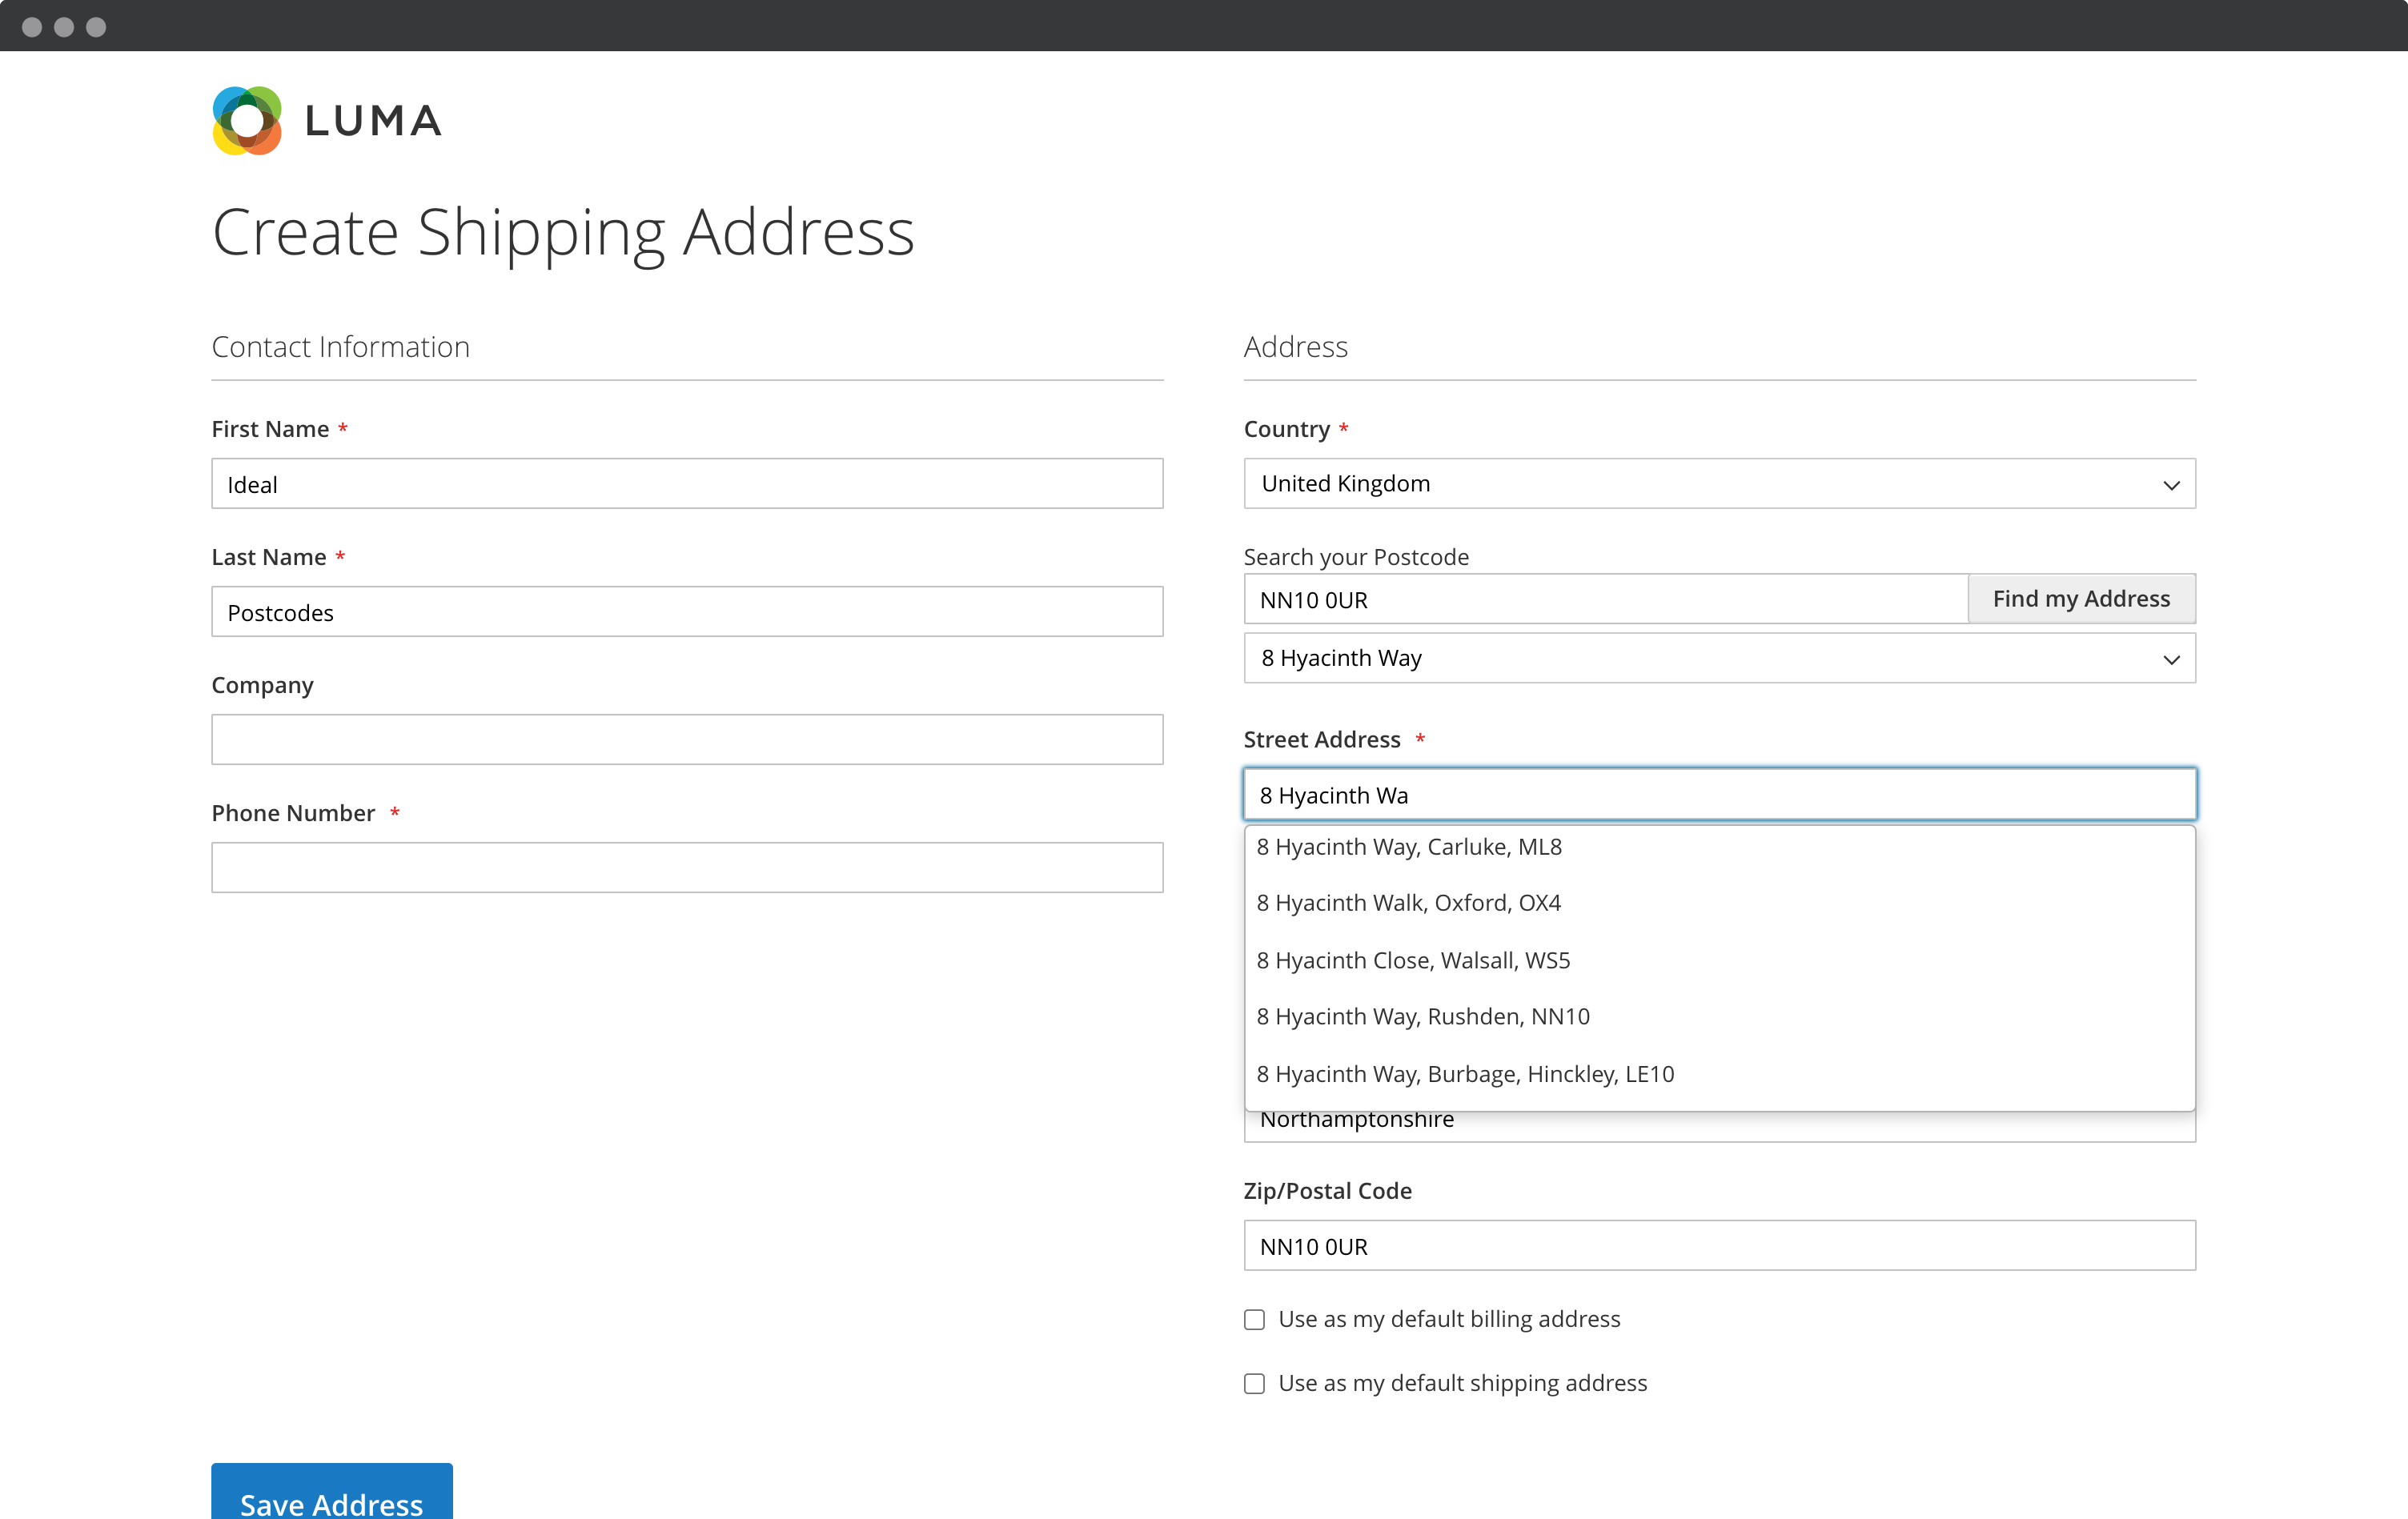 Activate address autocompletion on your address collection forms-screenshot